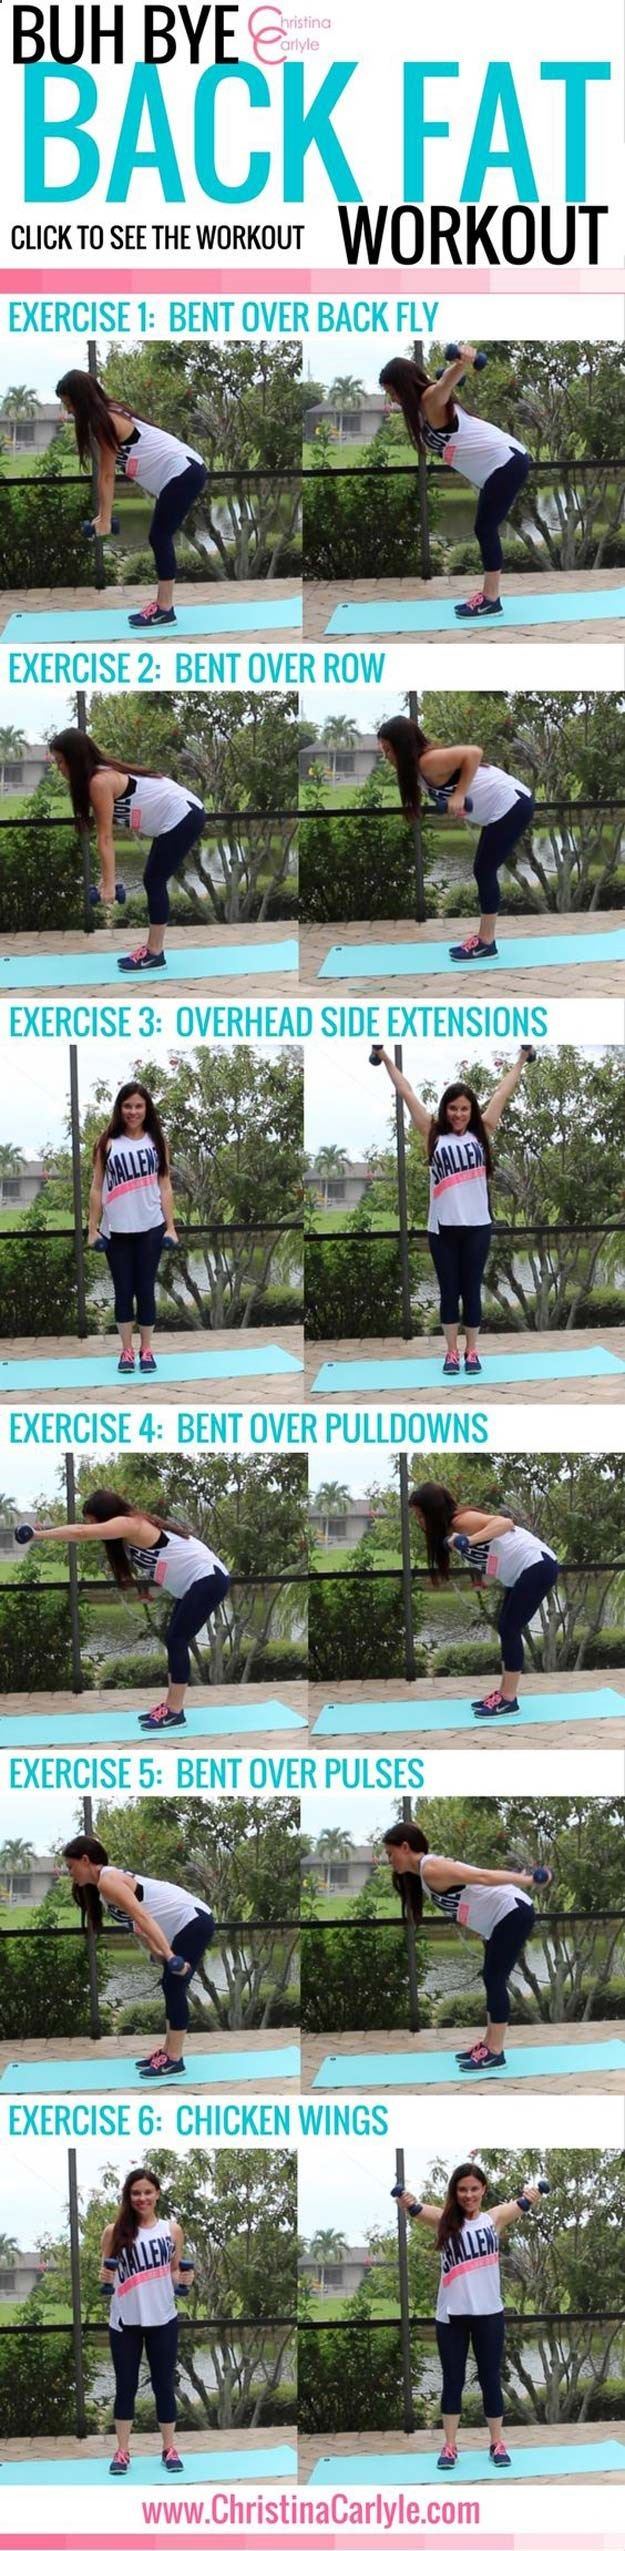 Best Exercises for Abs - Workouts for women - Exercises for Back Fat - Best Ab Exercises And Ab Workouts For A Flat Stomach, Increased Health Fitness, And Weightless. Ab Exercises For Women, For Men, And For Kids. Great With A Diet To Help With Losing Wei (Vegan Diet Muscle)